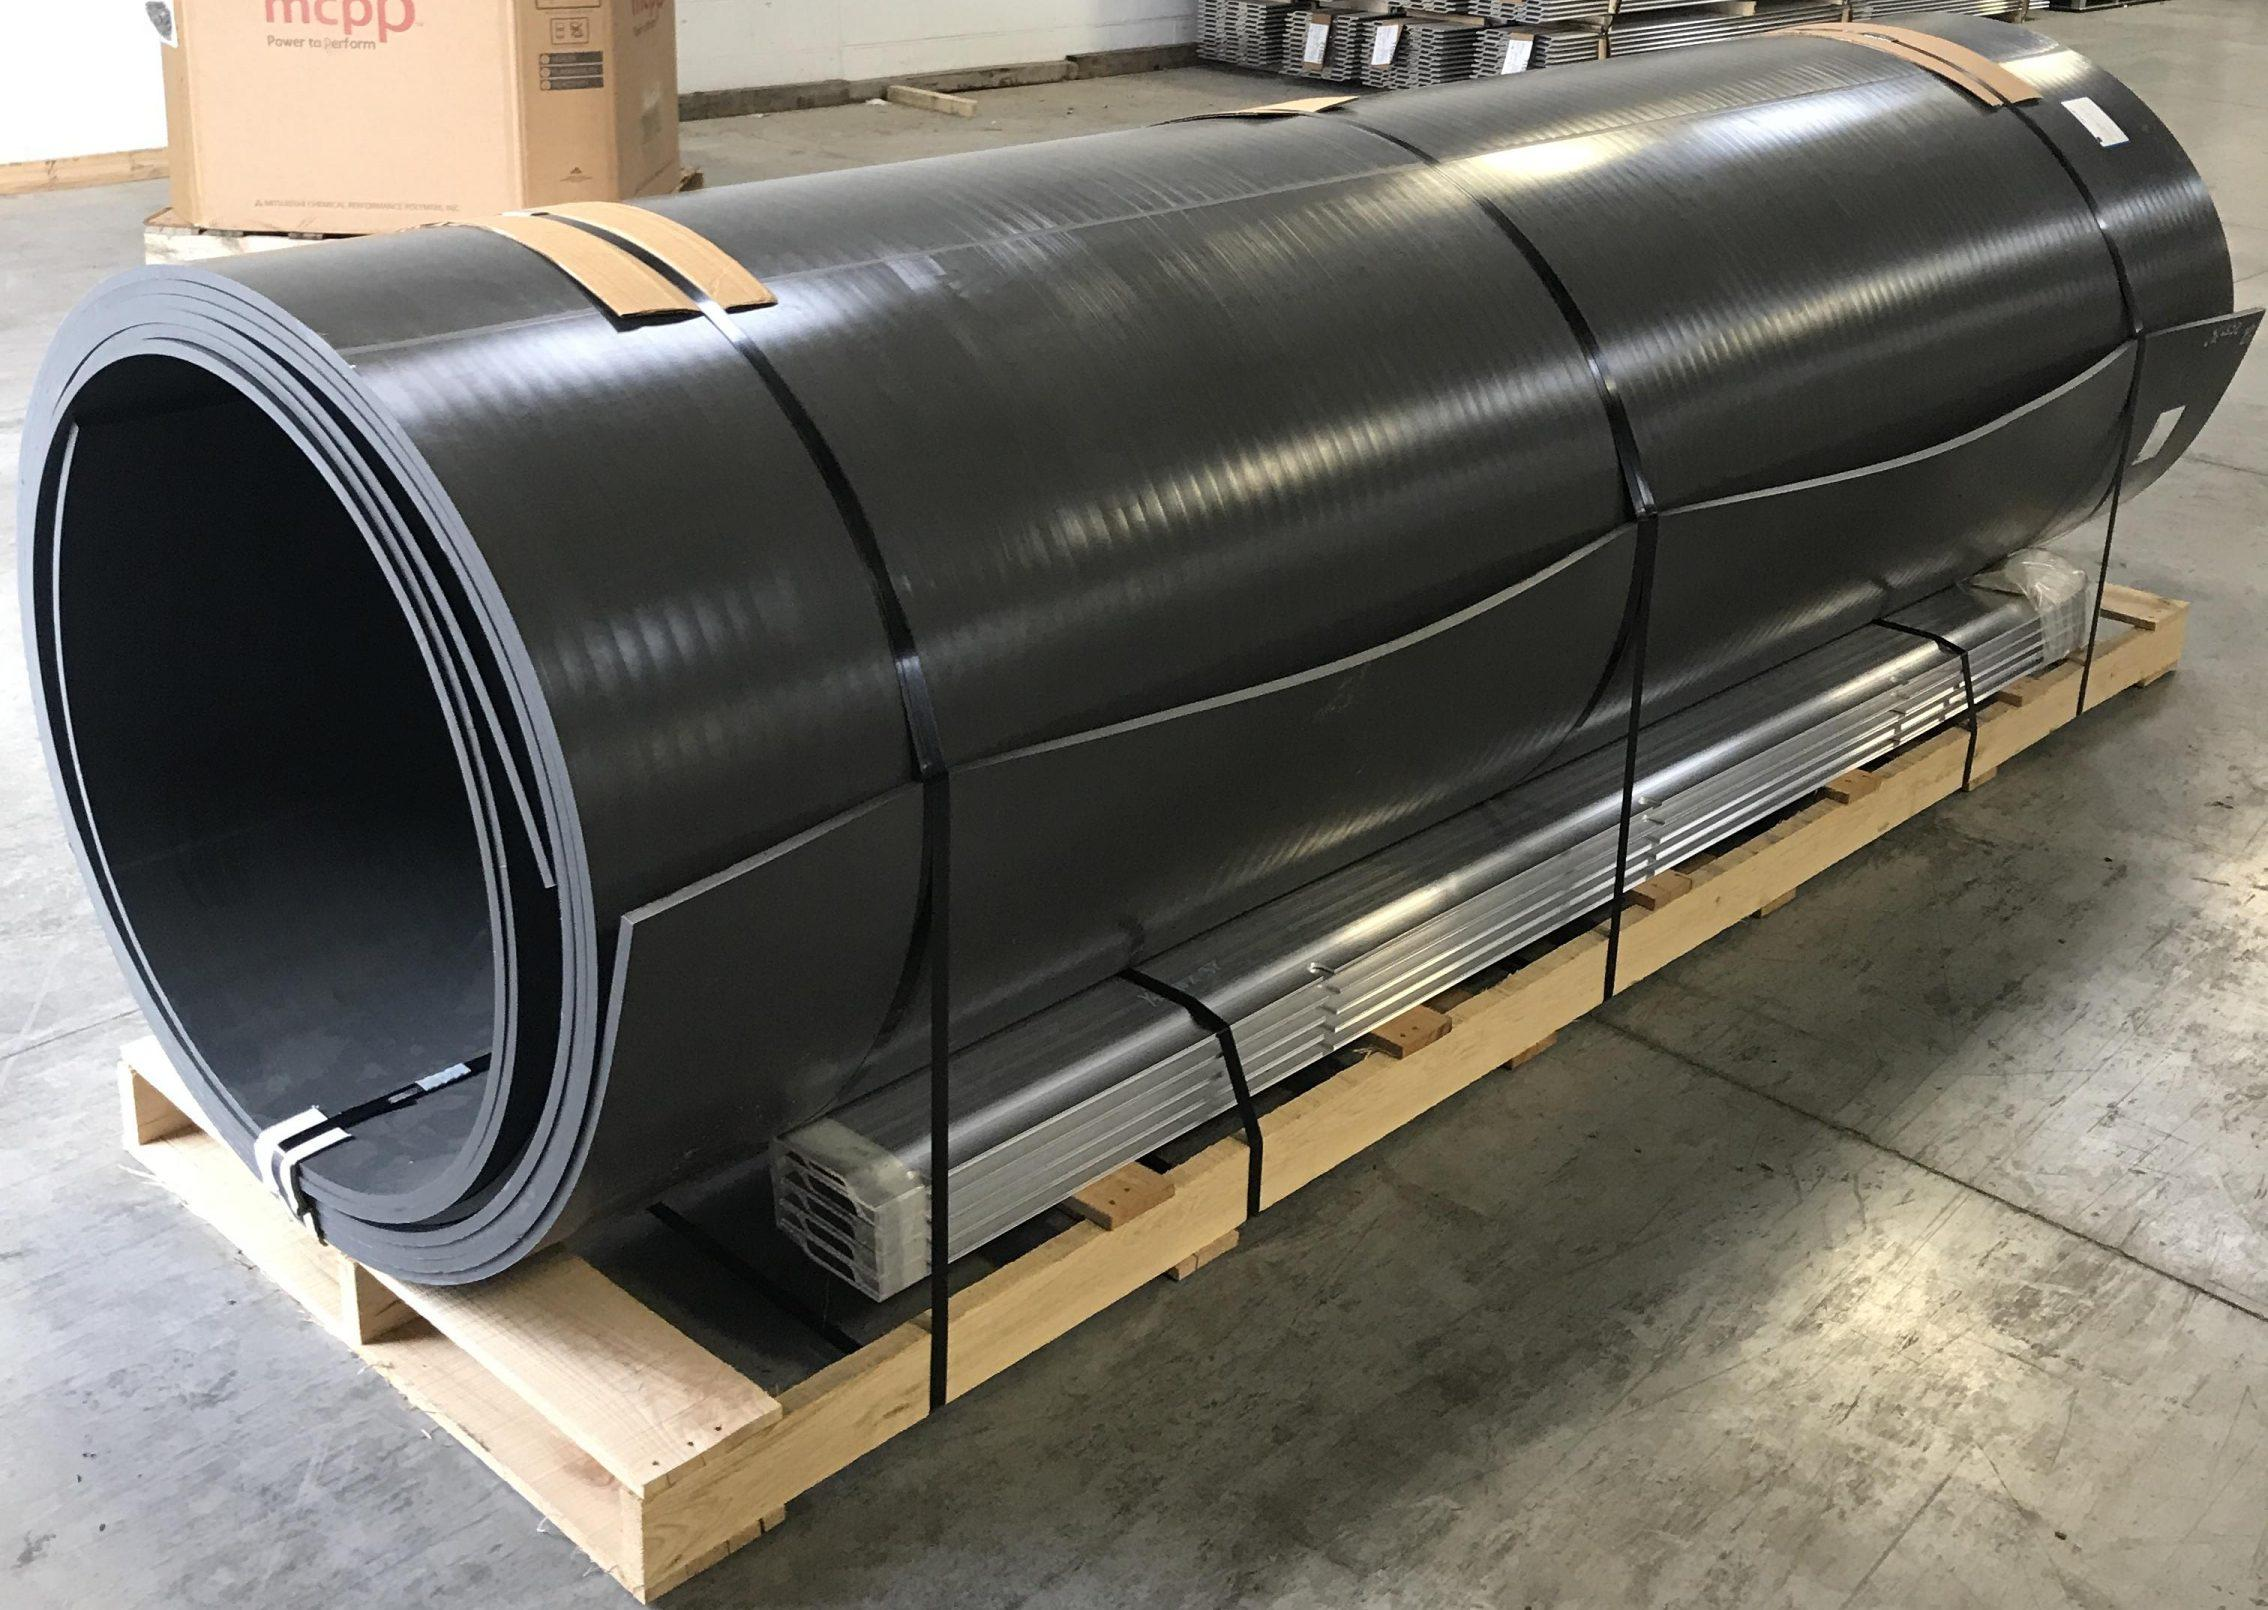 photo of a roll of black truck liner material on a pallet